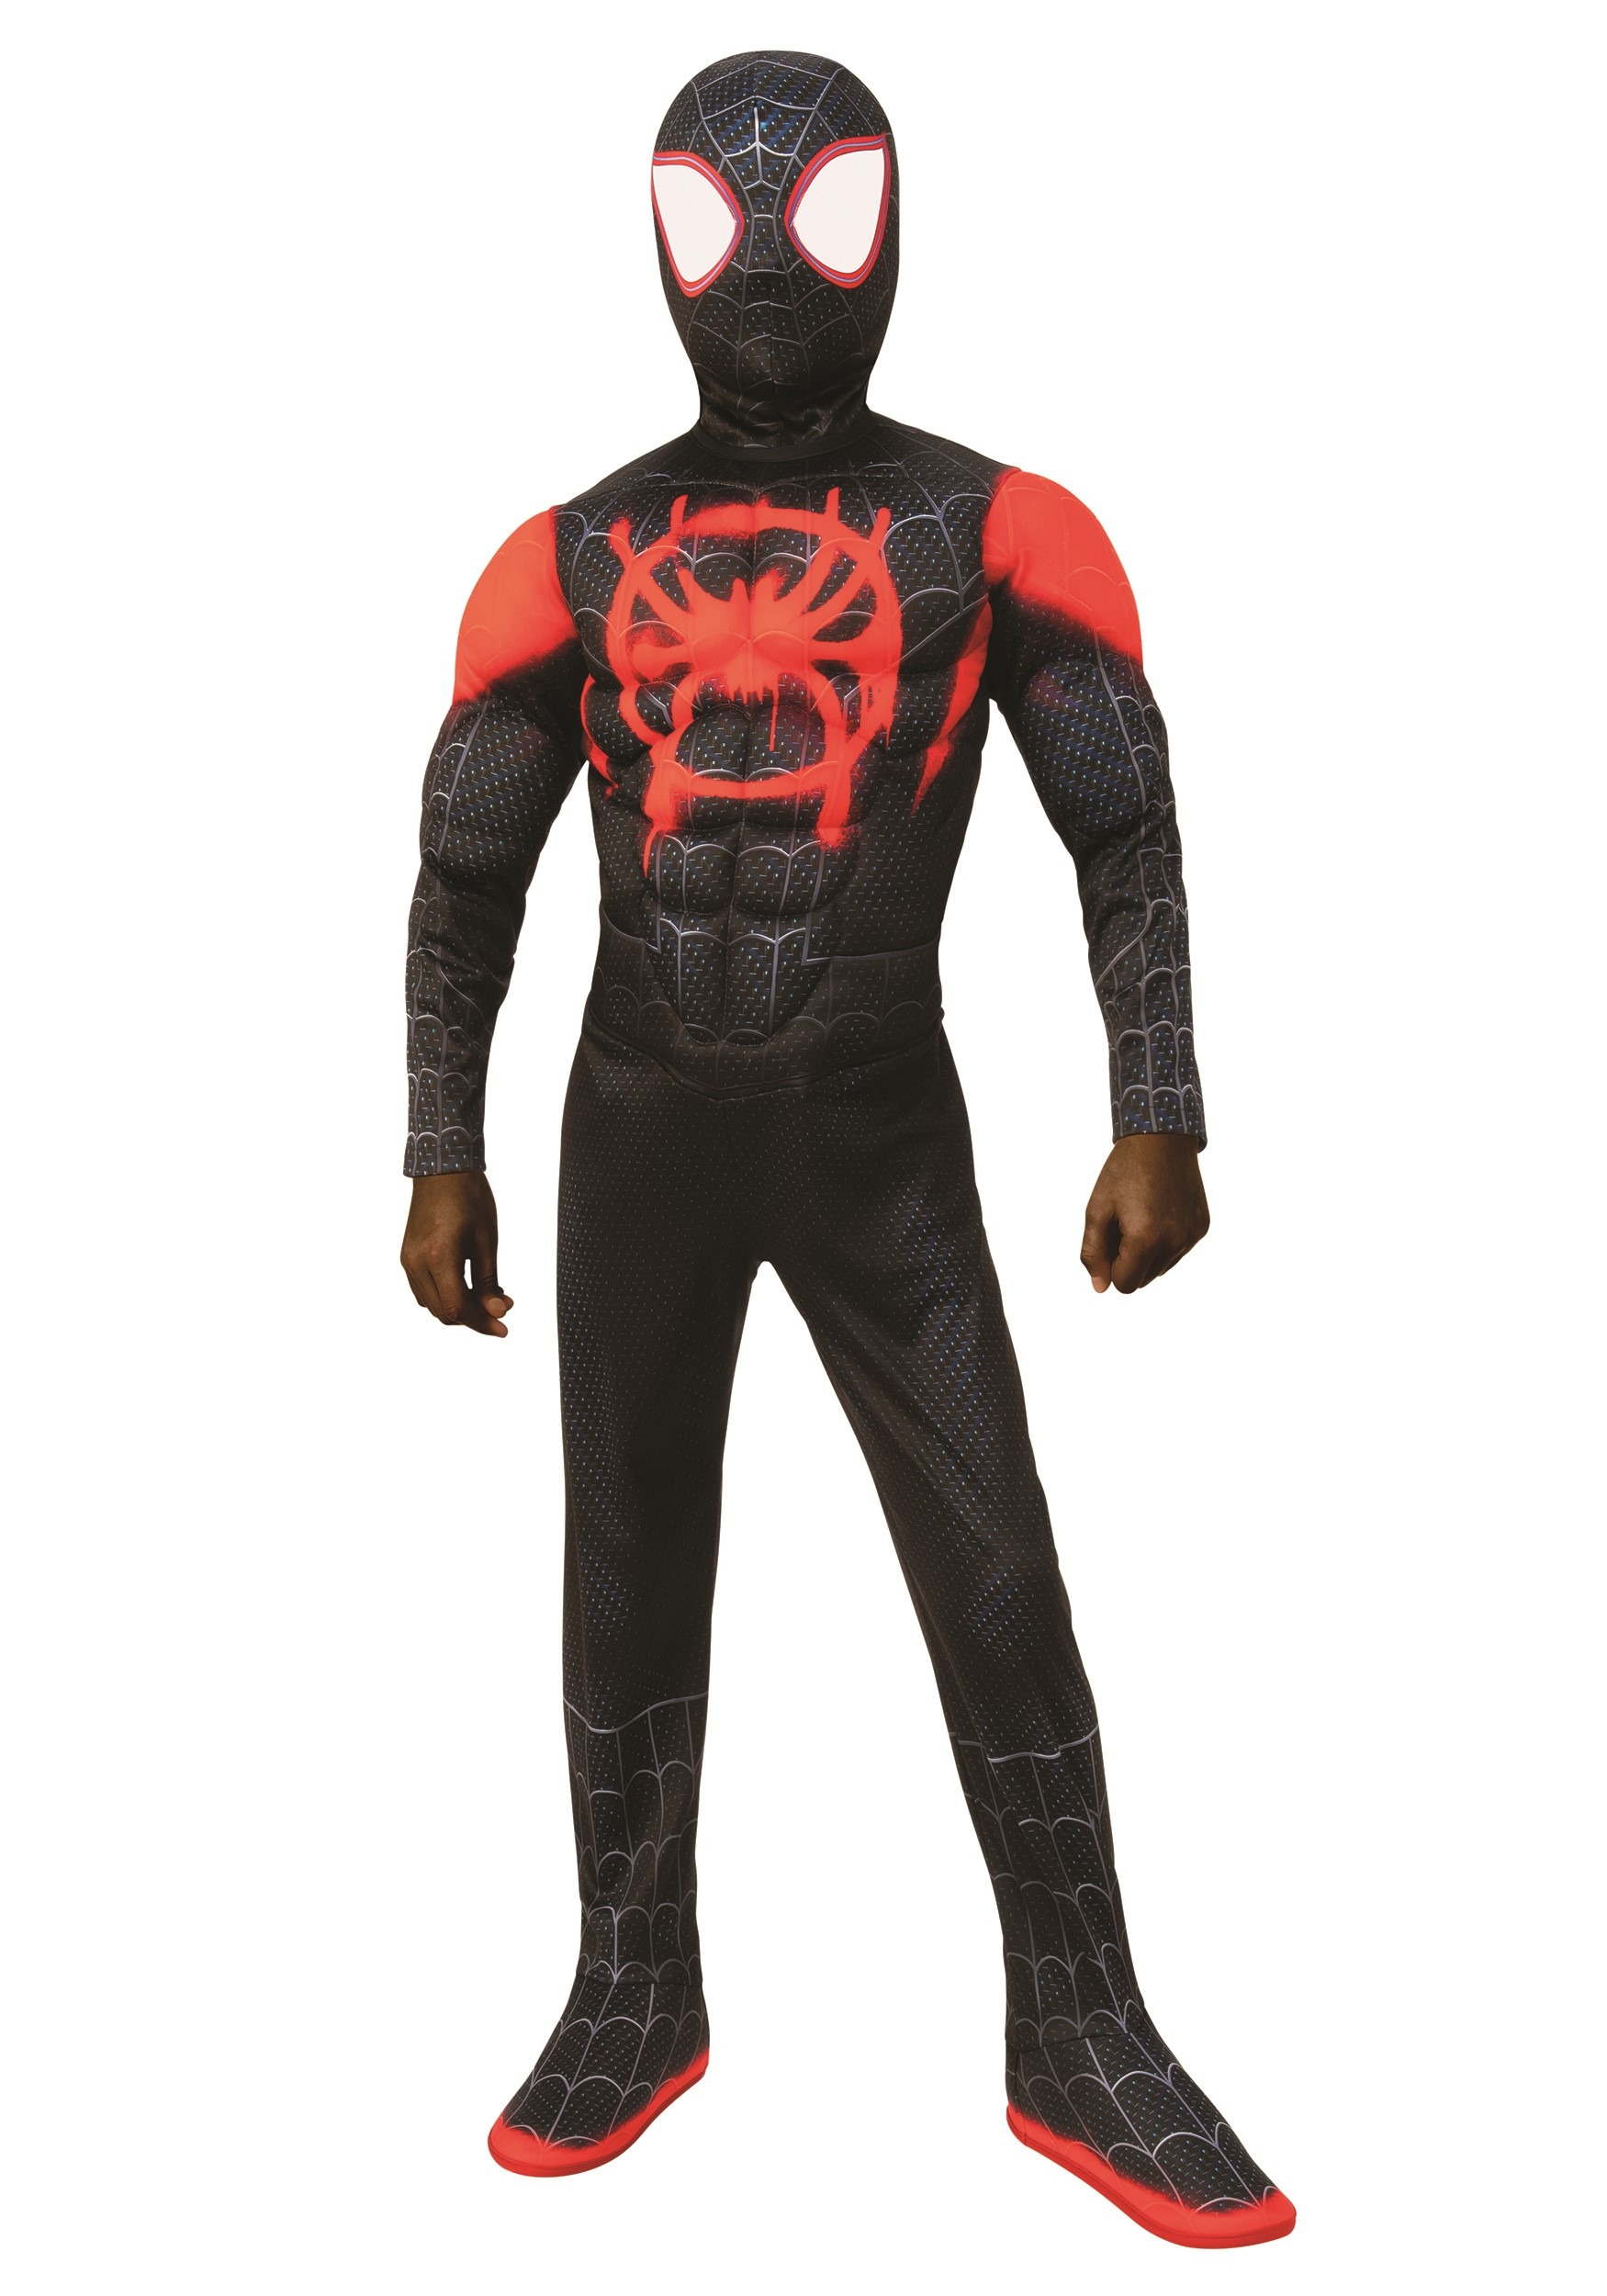 The Spider Man Miles Morales Deluxe Child Costume